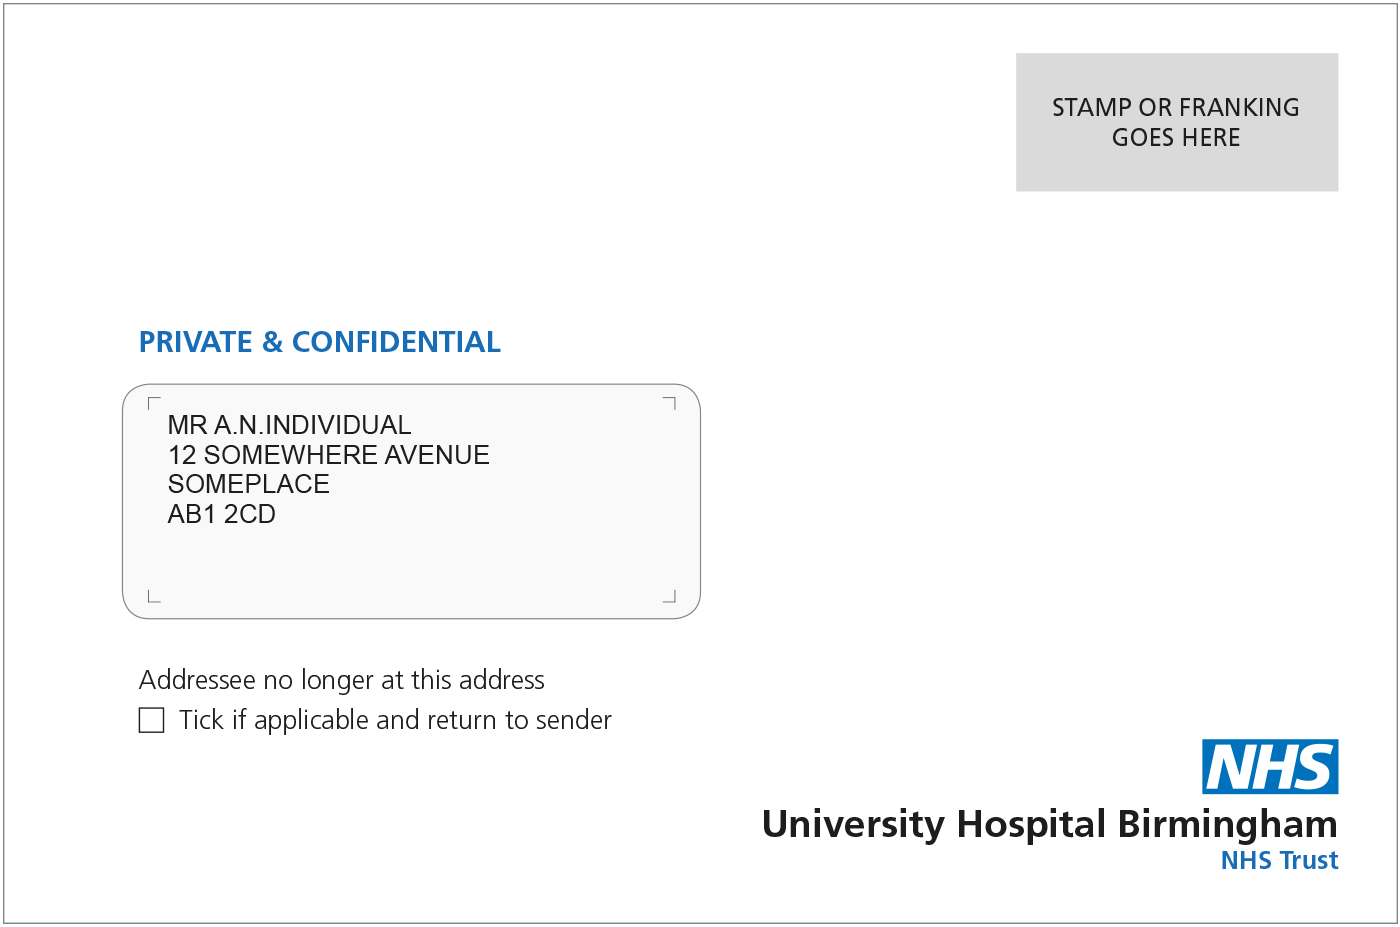 NHS Identity Guidelines